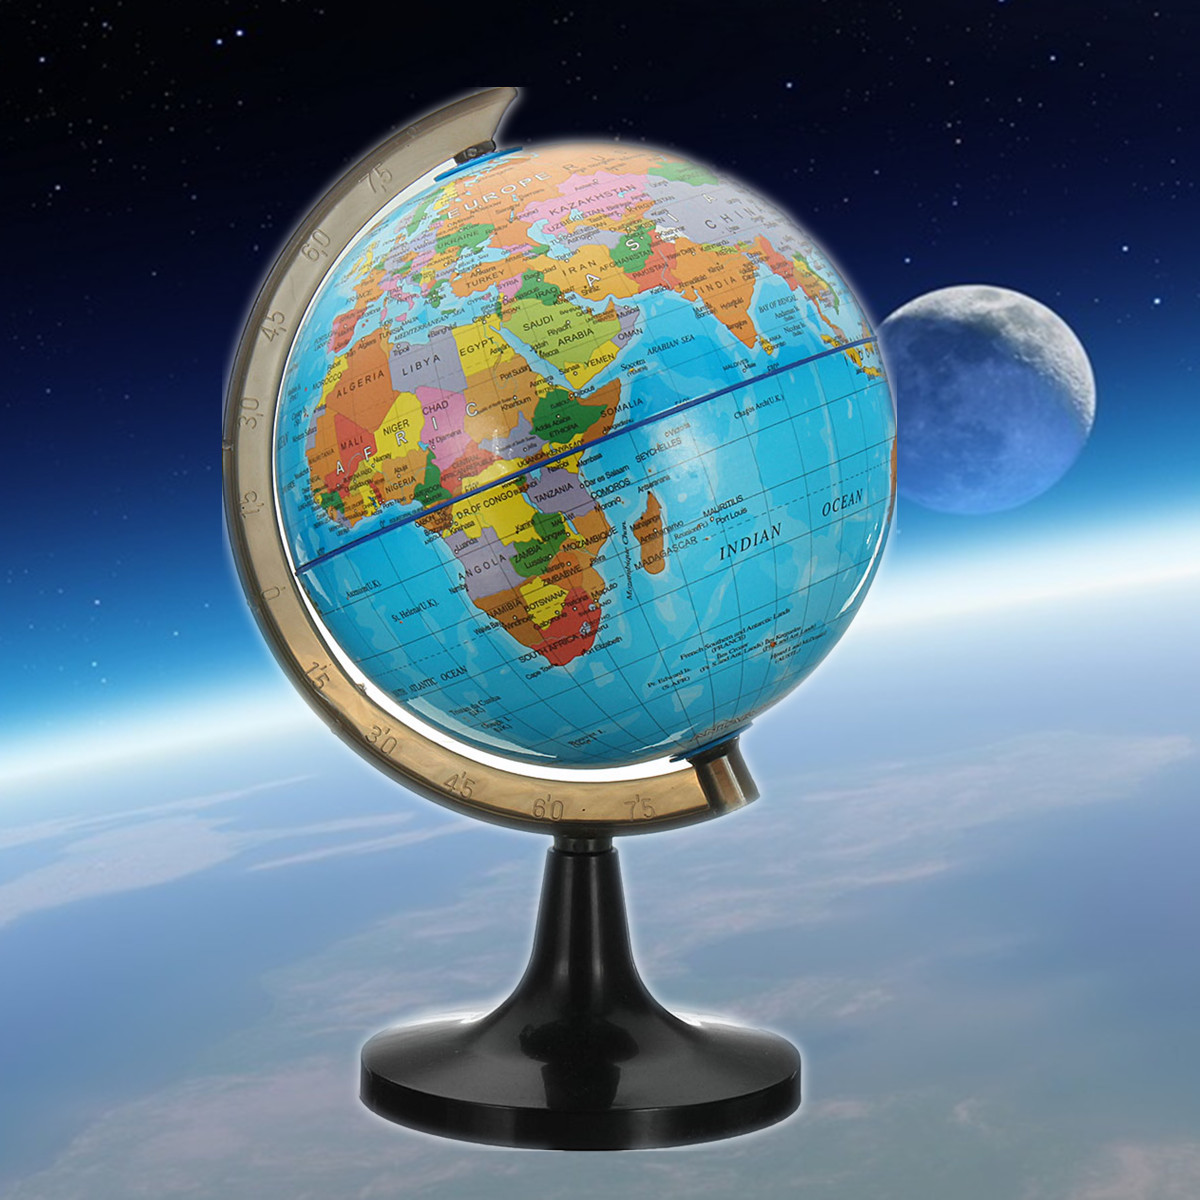 14 cm Globe World Earth Tellurion Globe World Map With Stand Geography School Educational Tool Home Office Ornament Gift new led world map world globe rotating swivel map of earth geography globe figurines ornaments birthday gift home office decor